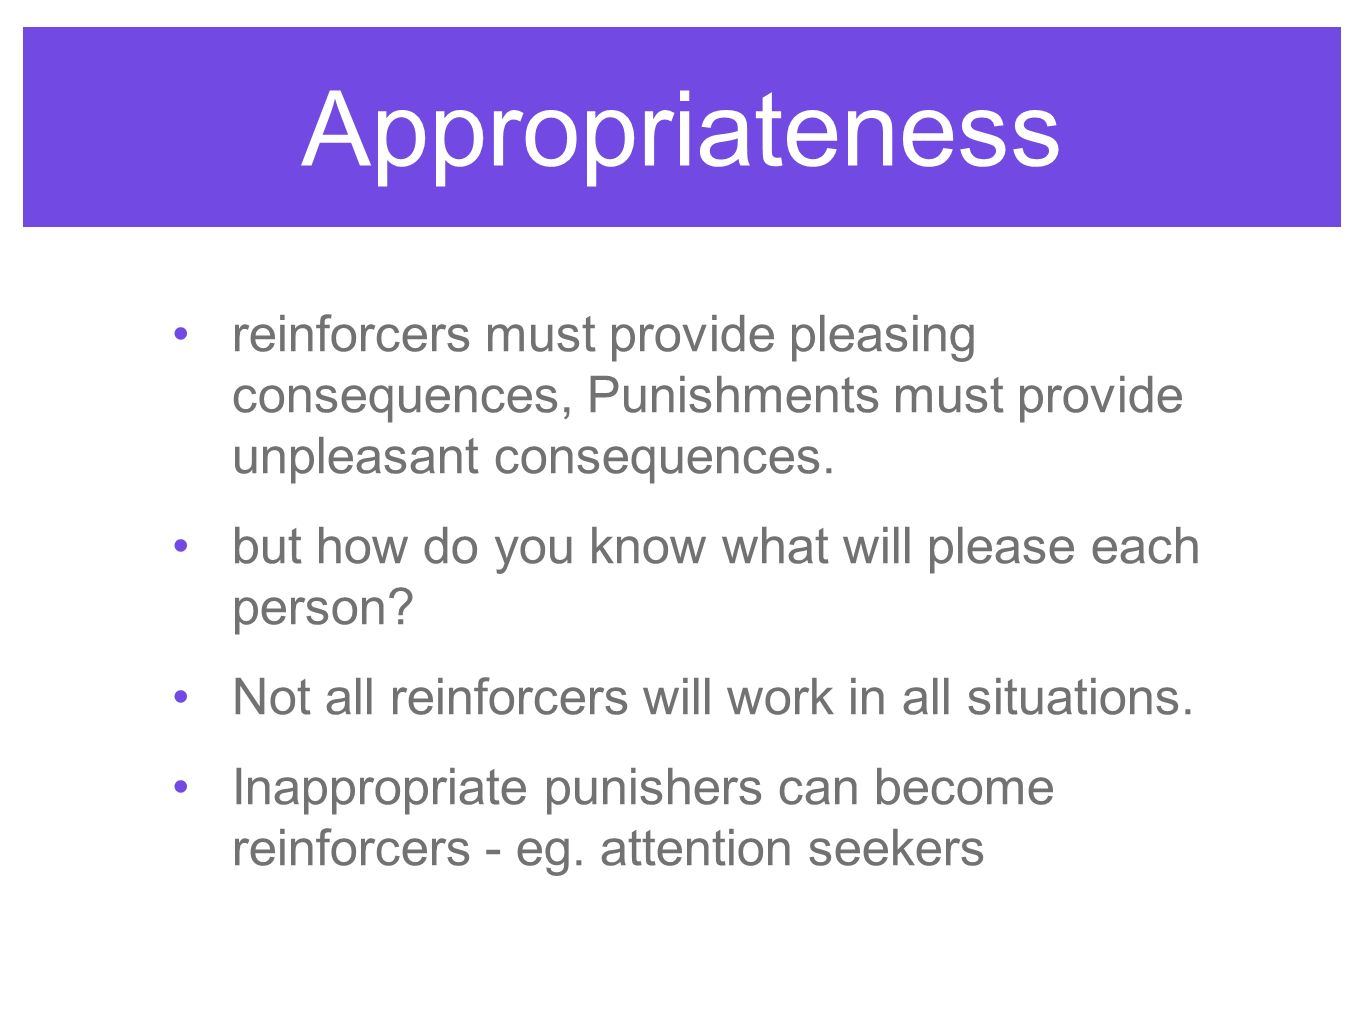 Appropriateness reinforcers must provide pleasing consequences, Punishments must provide unpleasant consequences.